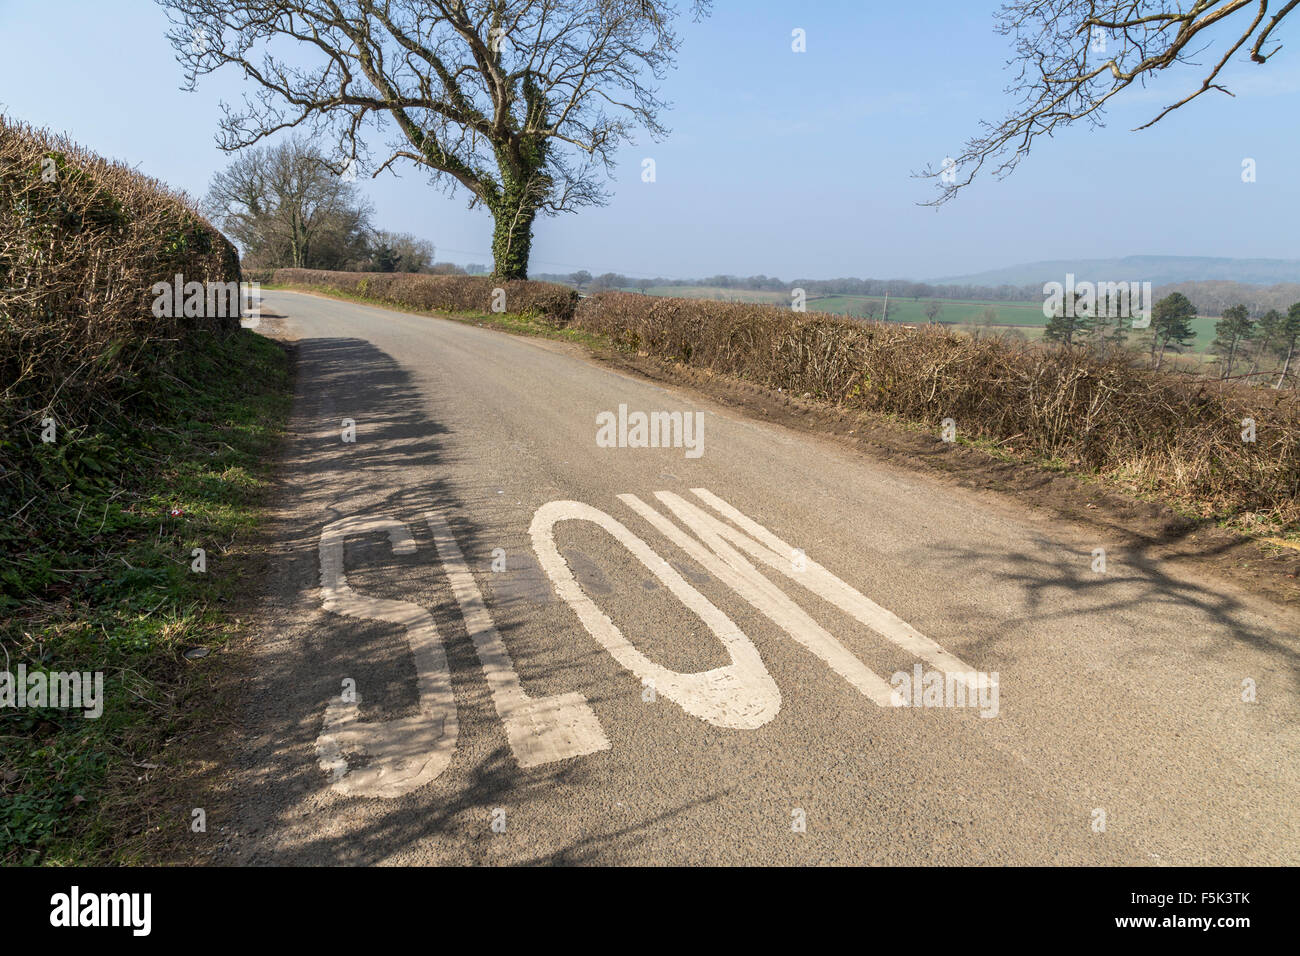 The painted word 'SLOW' on a countryside lane before a blind bend, corner. Hedgerow lined trees. - Stock Image